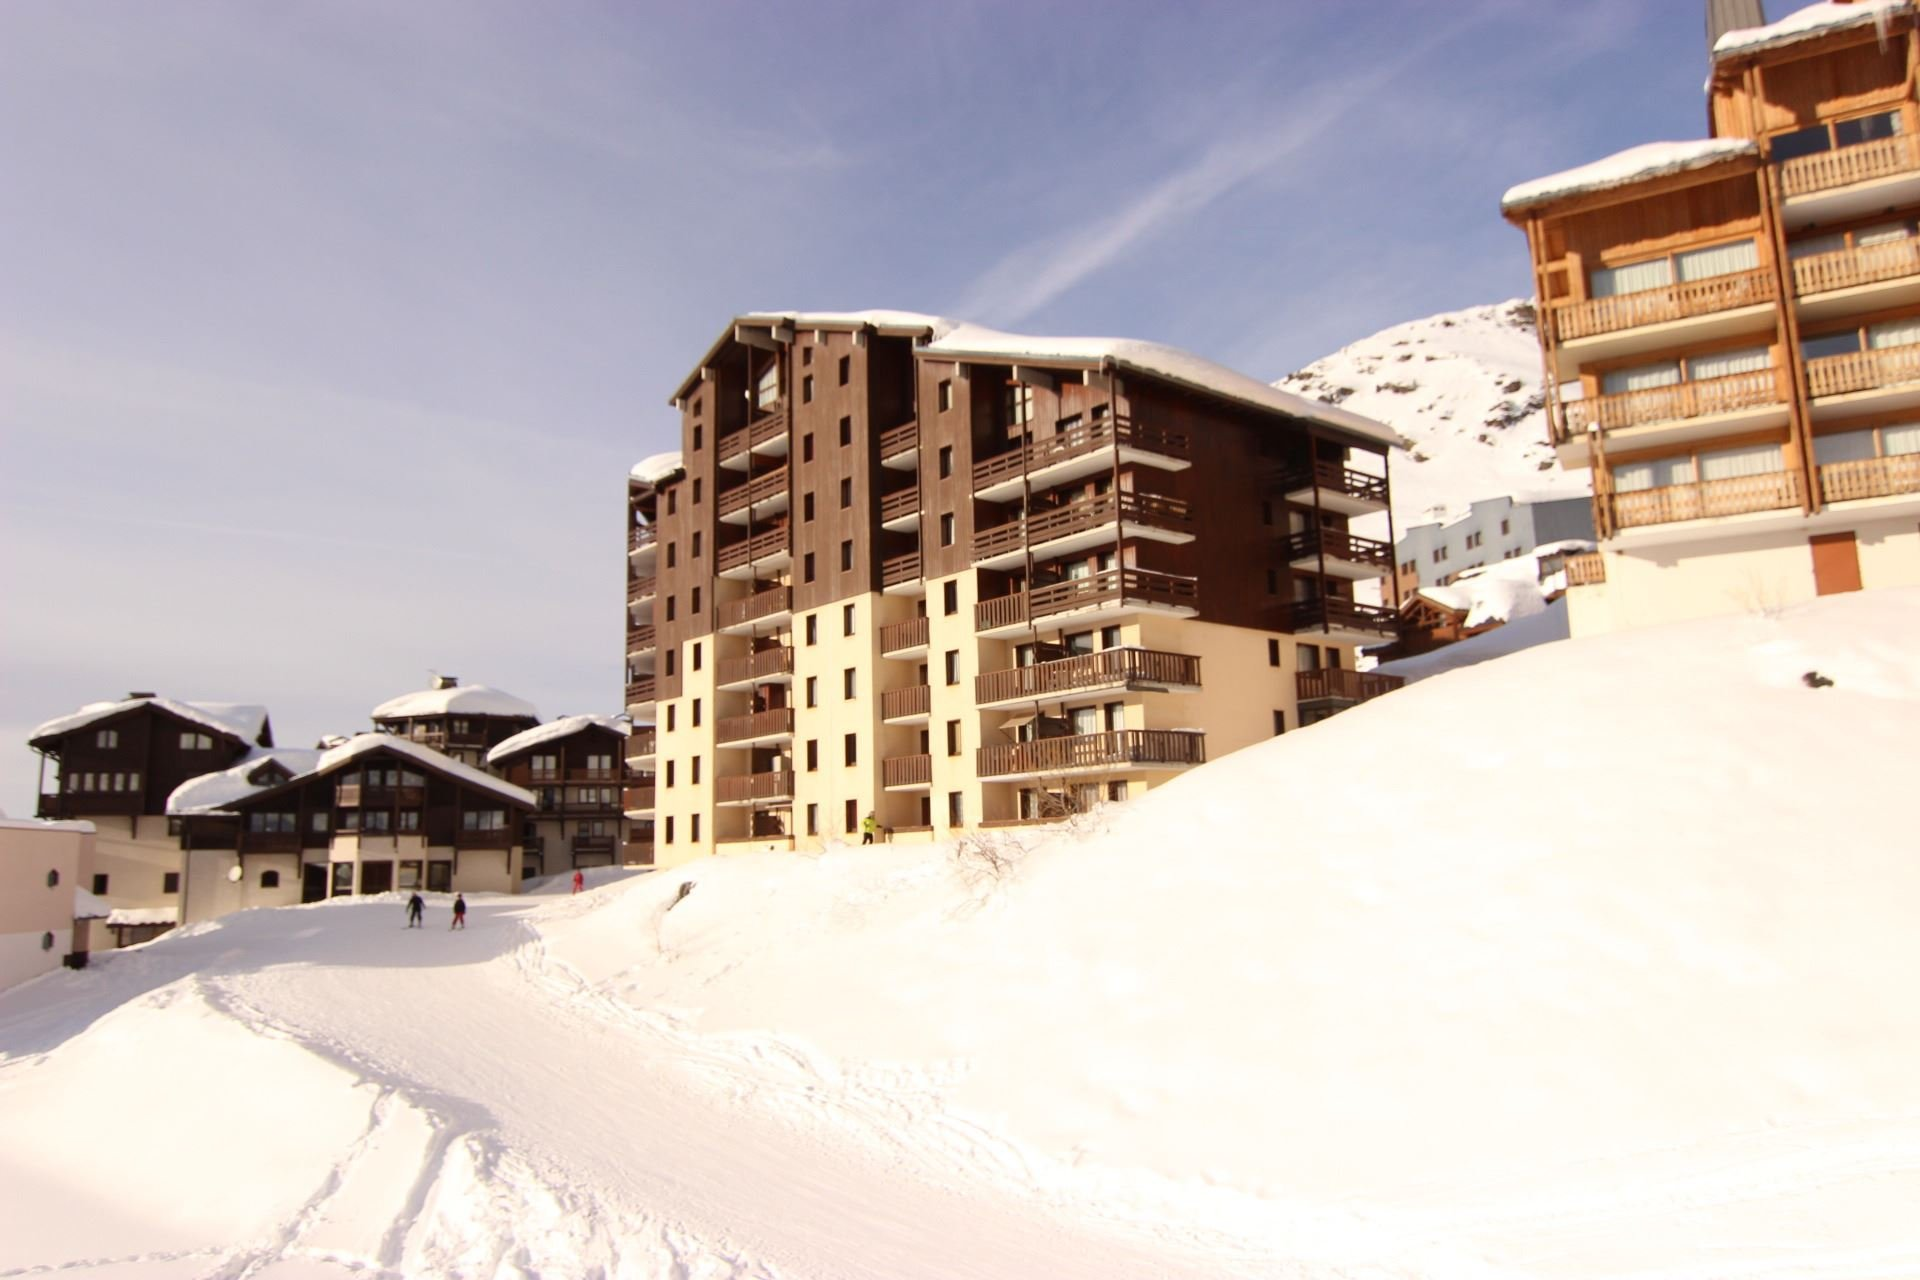 REINE BLANCHE 115 / 3 ROOMS DUPLEX 6 PERSONS - 4 GOLD SNOWFLAKES - VTI